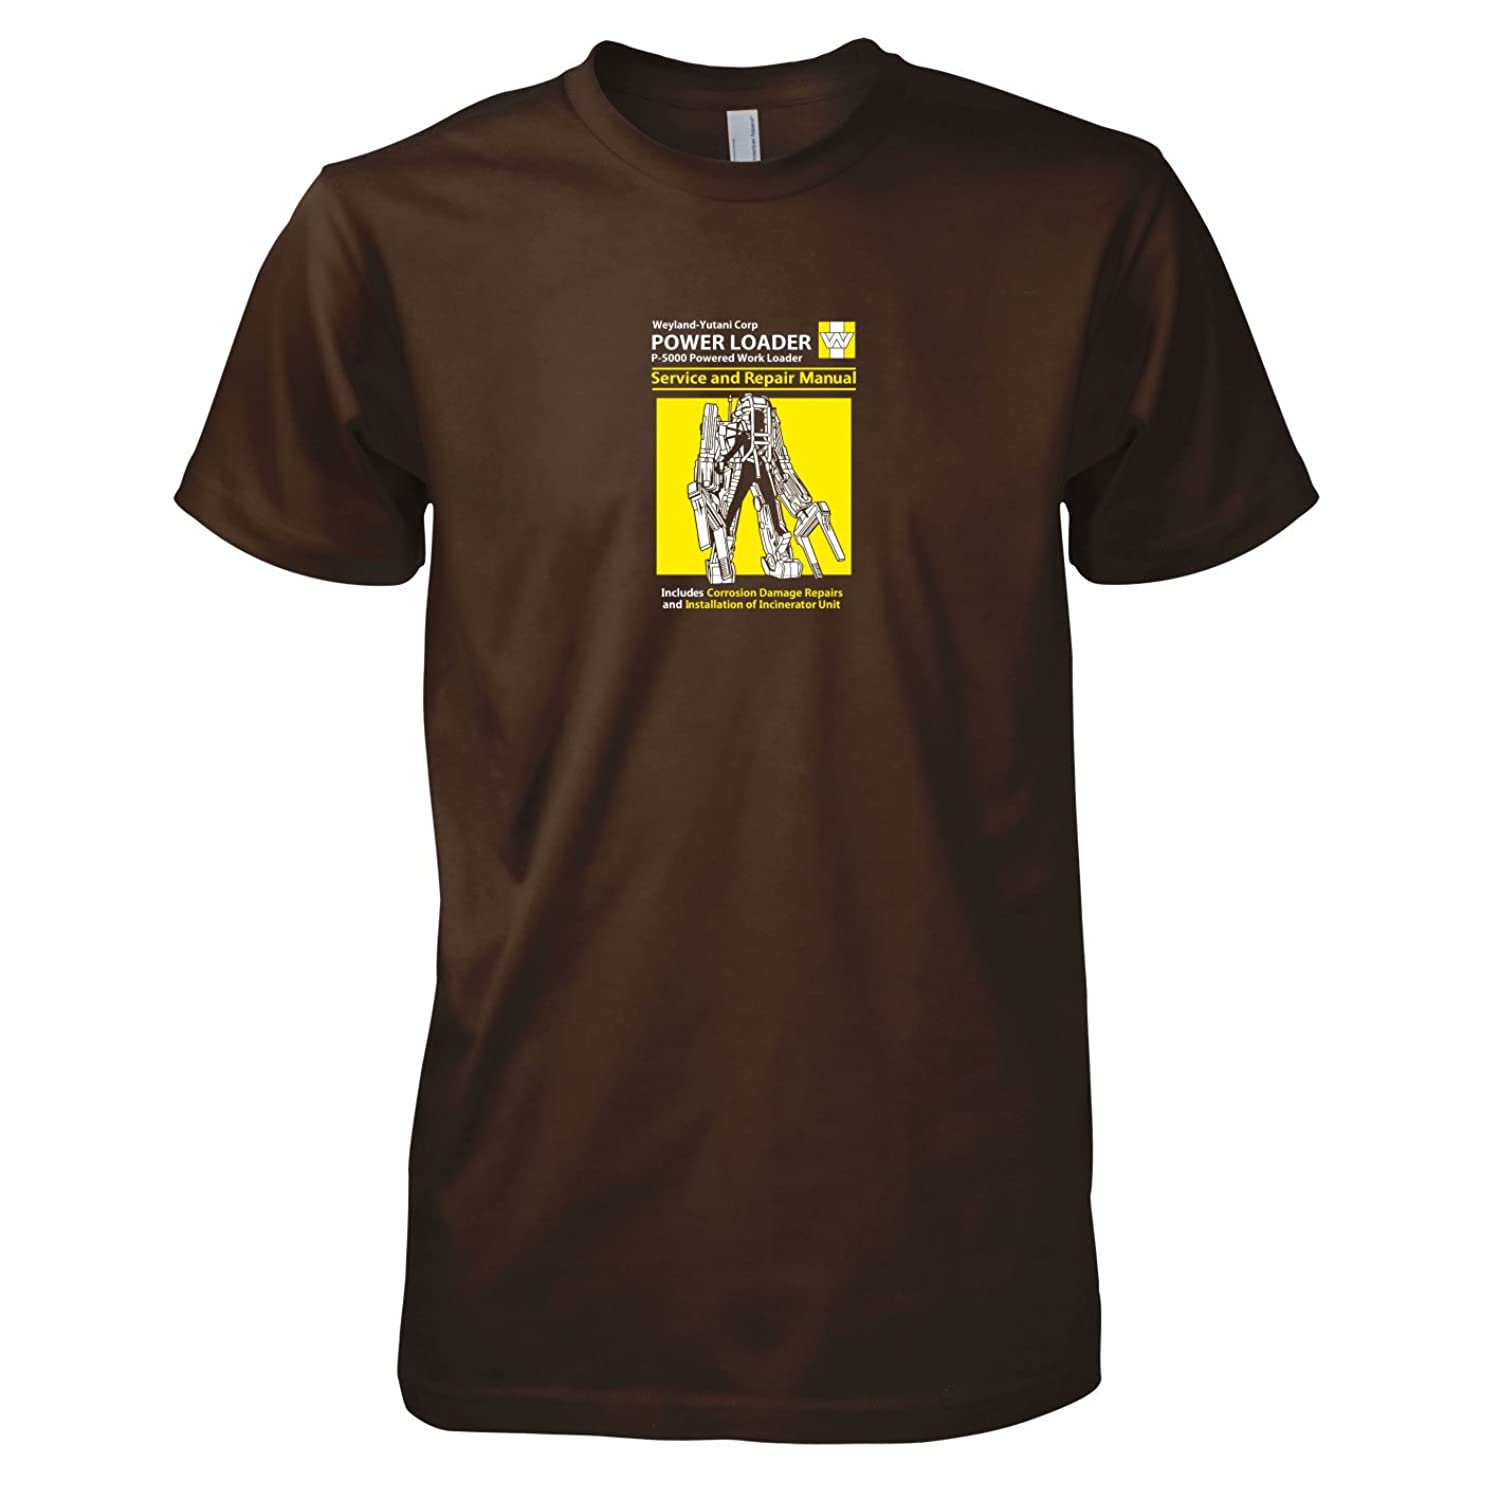 TEXLAB - Weyland Yutani Power Loader - Herren T-Shirt: Amazon.de: Bekleidung